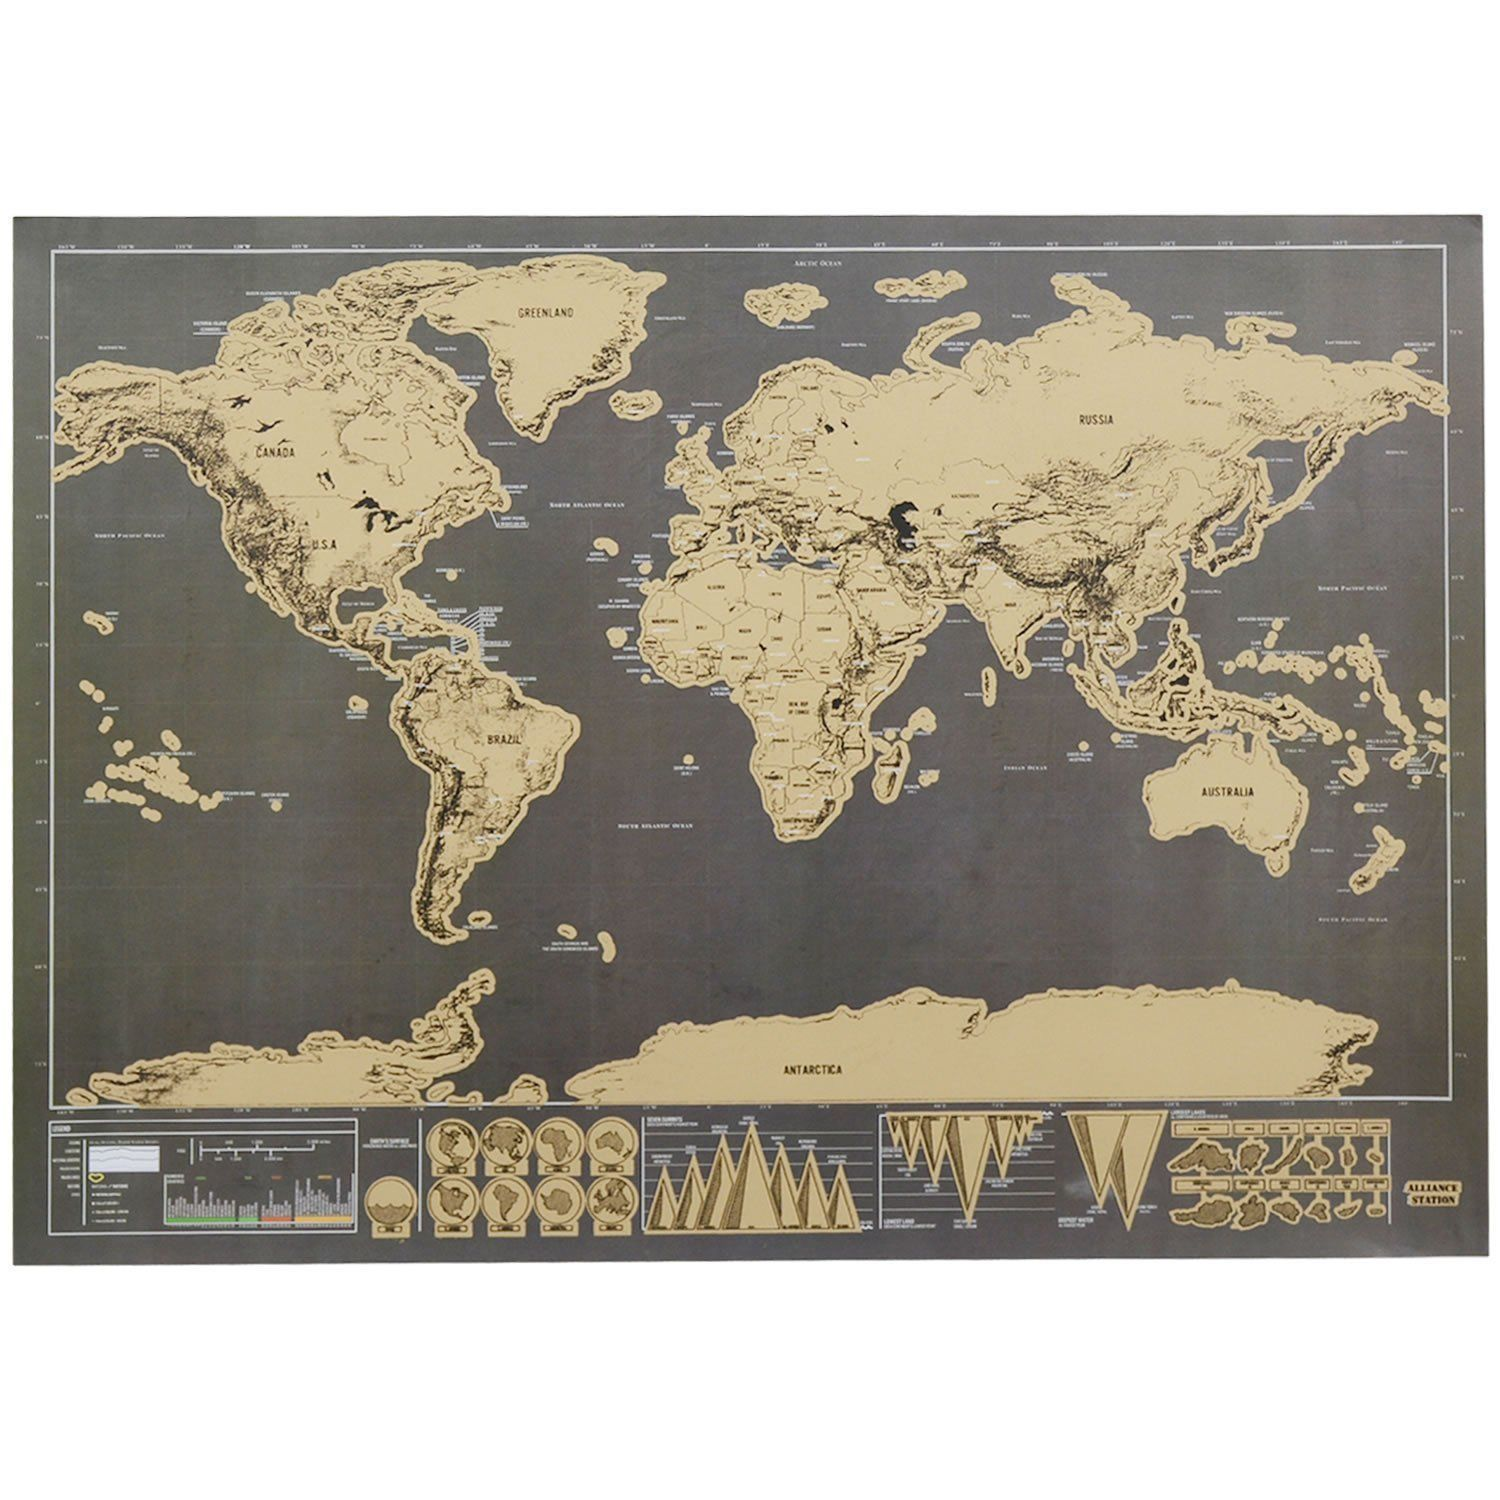 World map poster wholesale deluxe scratch off personalized school world map poster wholesale deluxe scratch off personalized school education fun in wall stickers from home garden on aliexpress alibaba group gumiabroncs Gallery